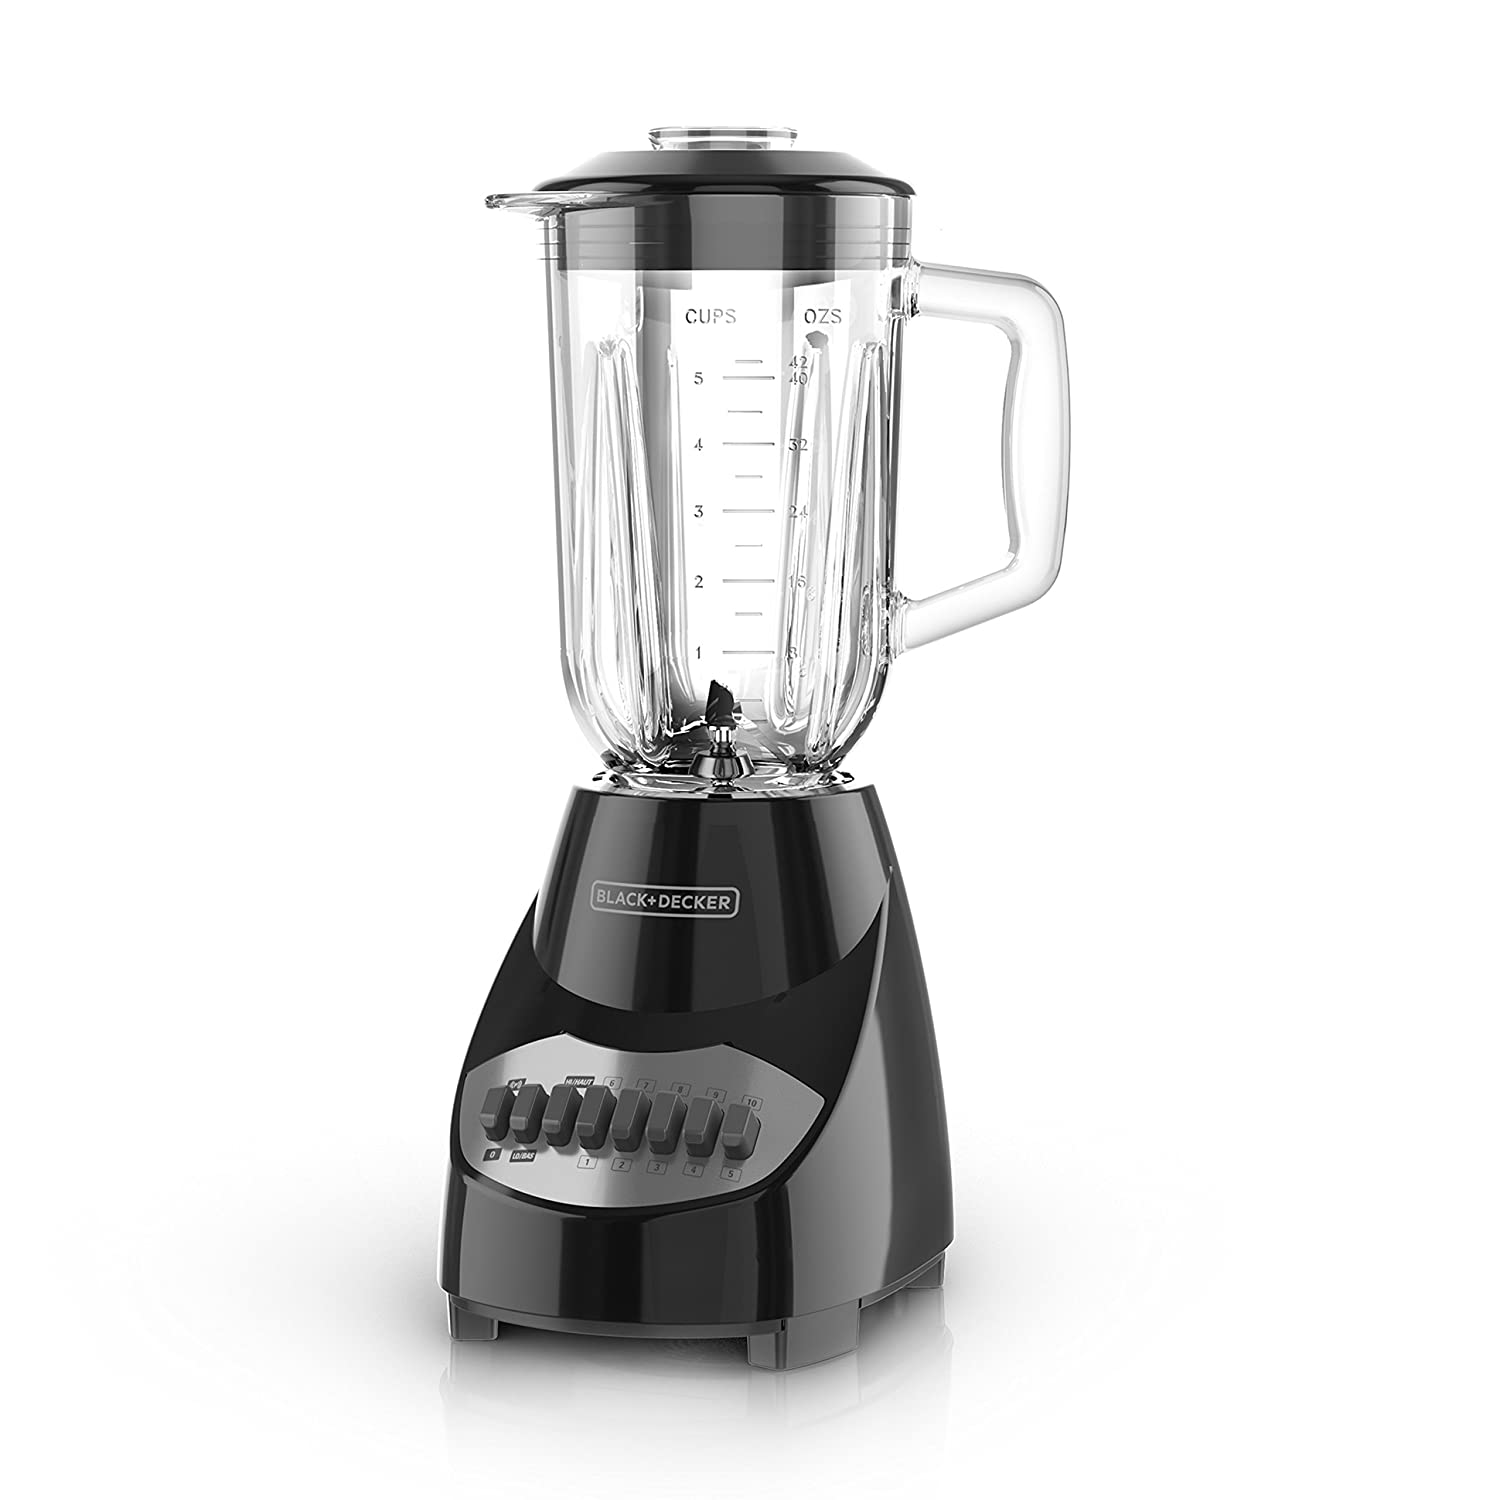 BLACK+DECKER Countertop Blender with 5-Cup Glass Jar, 10-Speed Settings, Black, BL2010BG